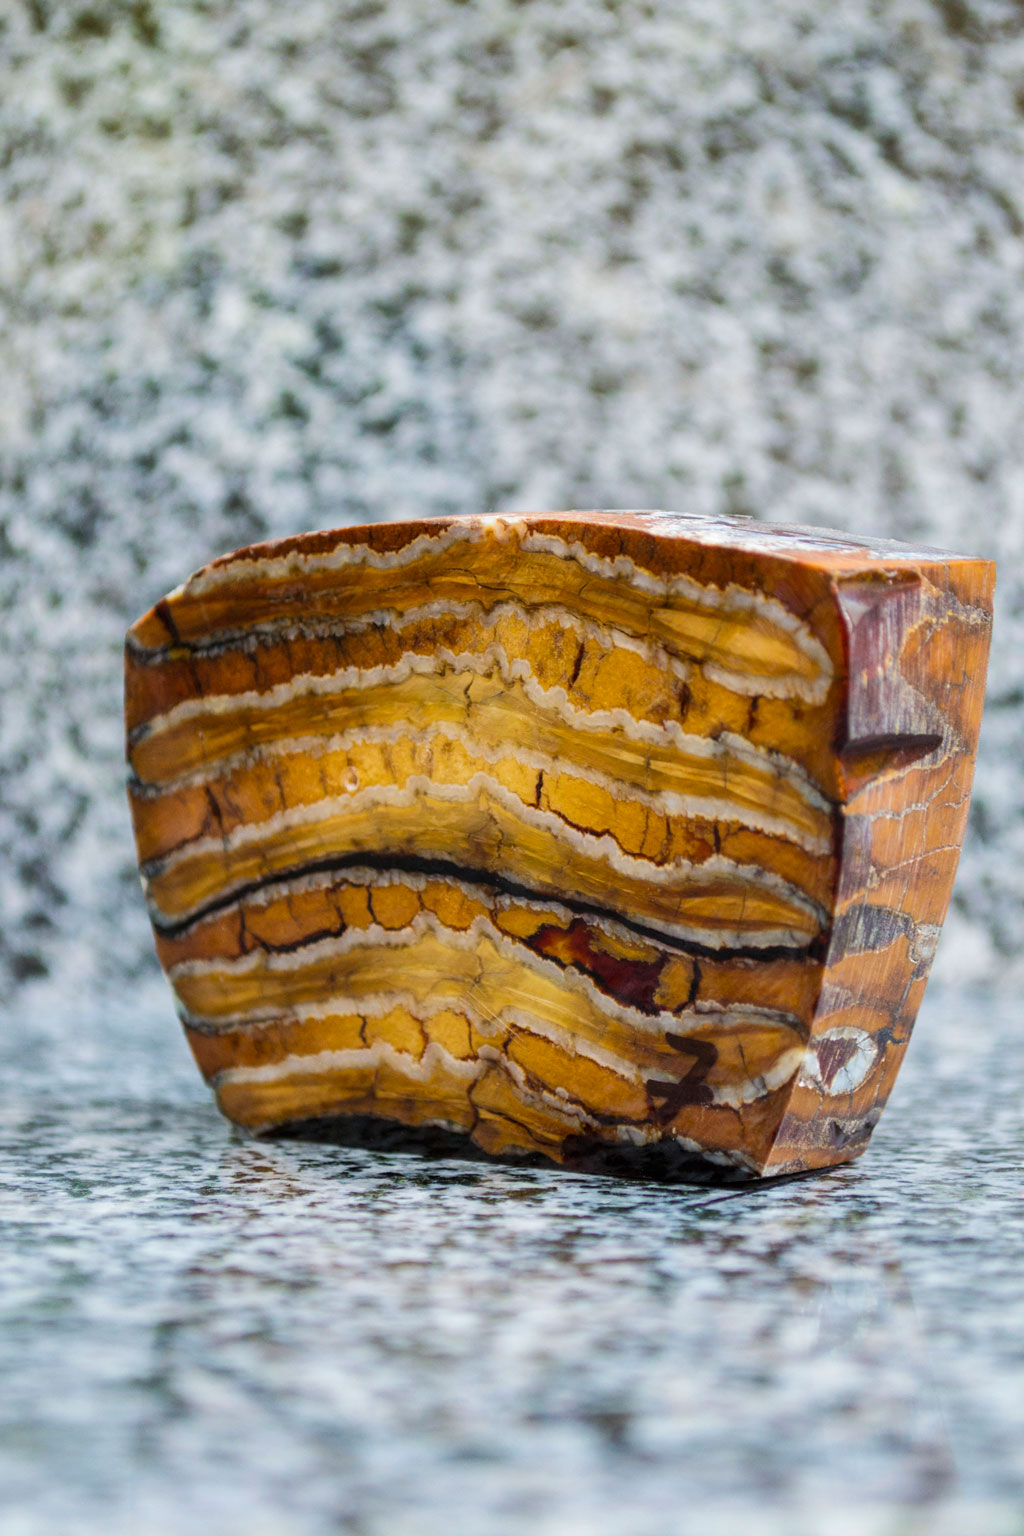 Stabilized Mammoth, Molar tooth, for sale, stabilized